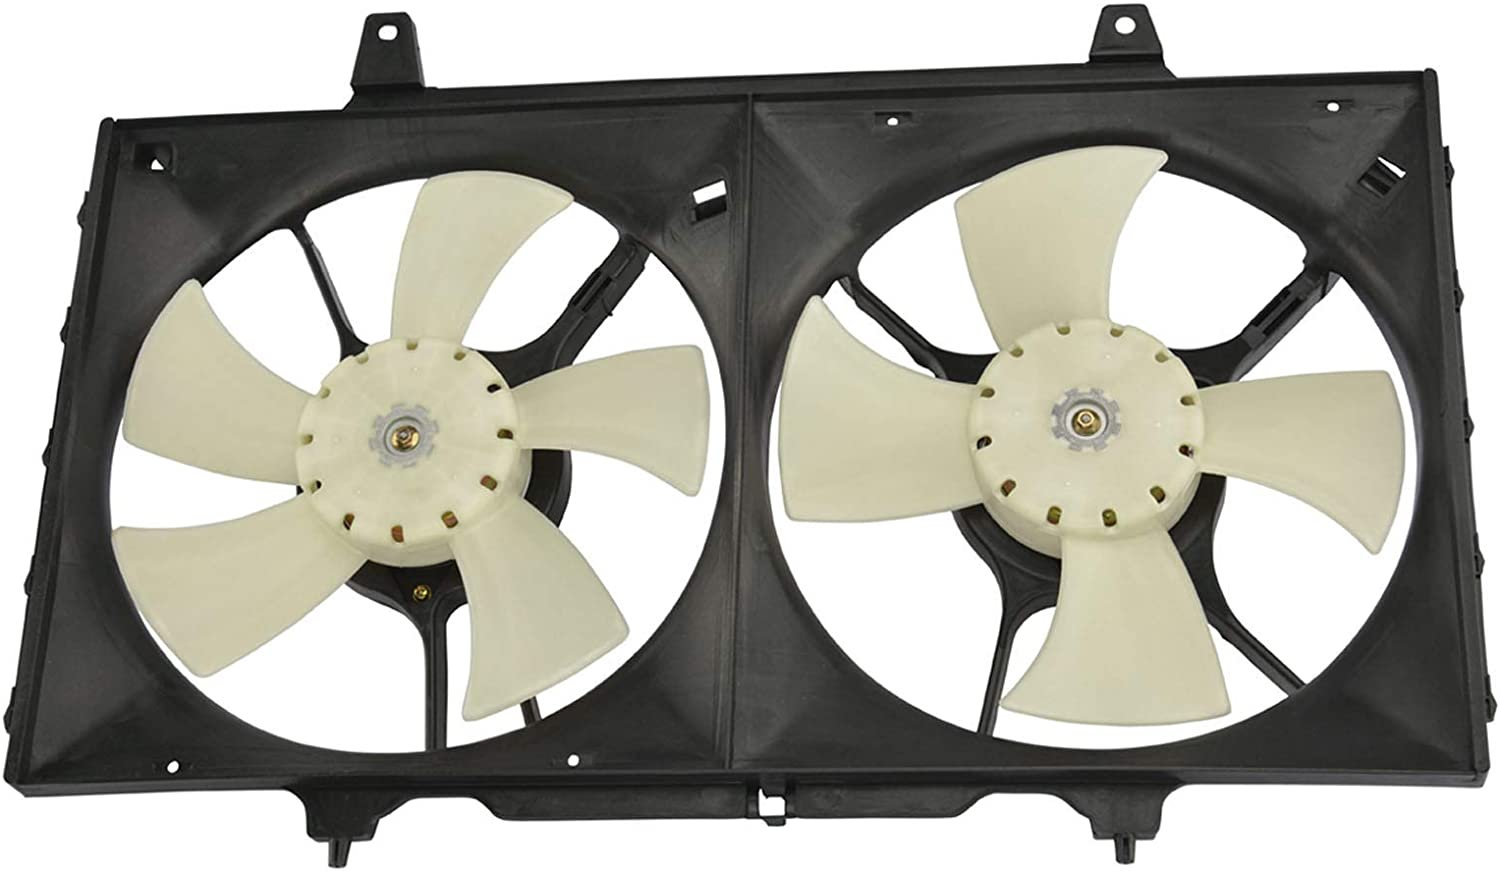 Radiator Cooling Fan & Motor Assembly for 98-01 Nissan Altima 2.4L